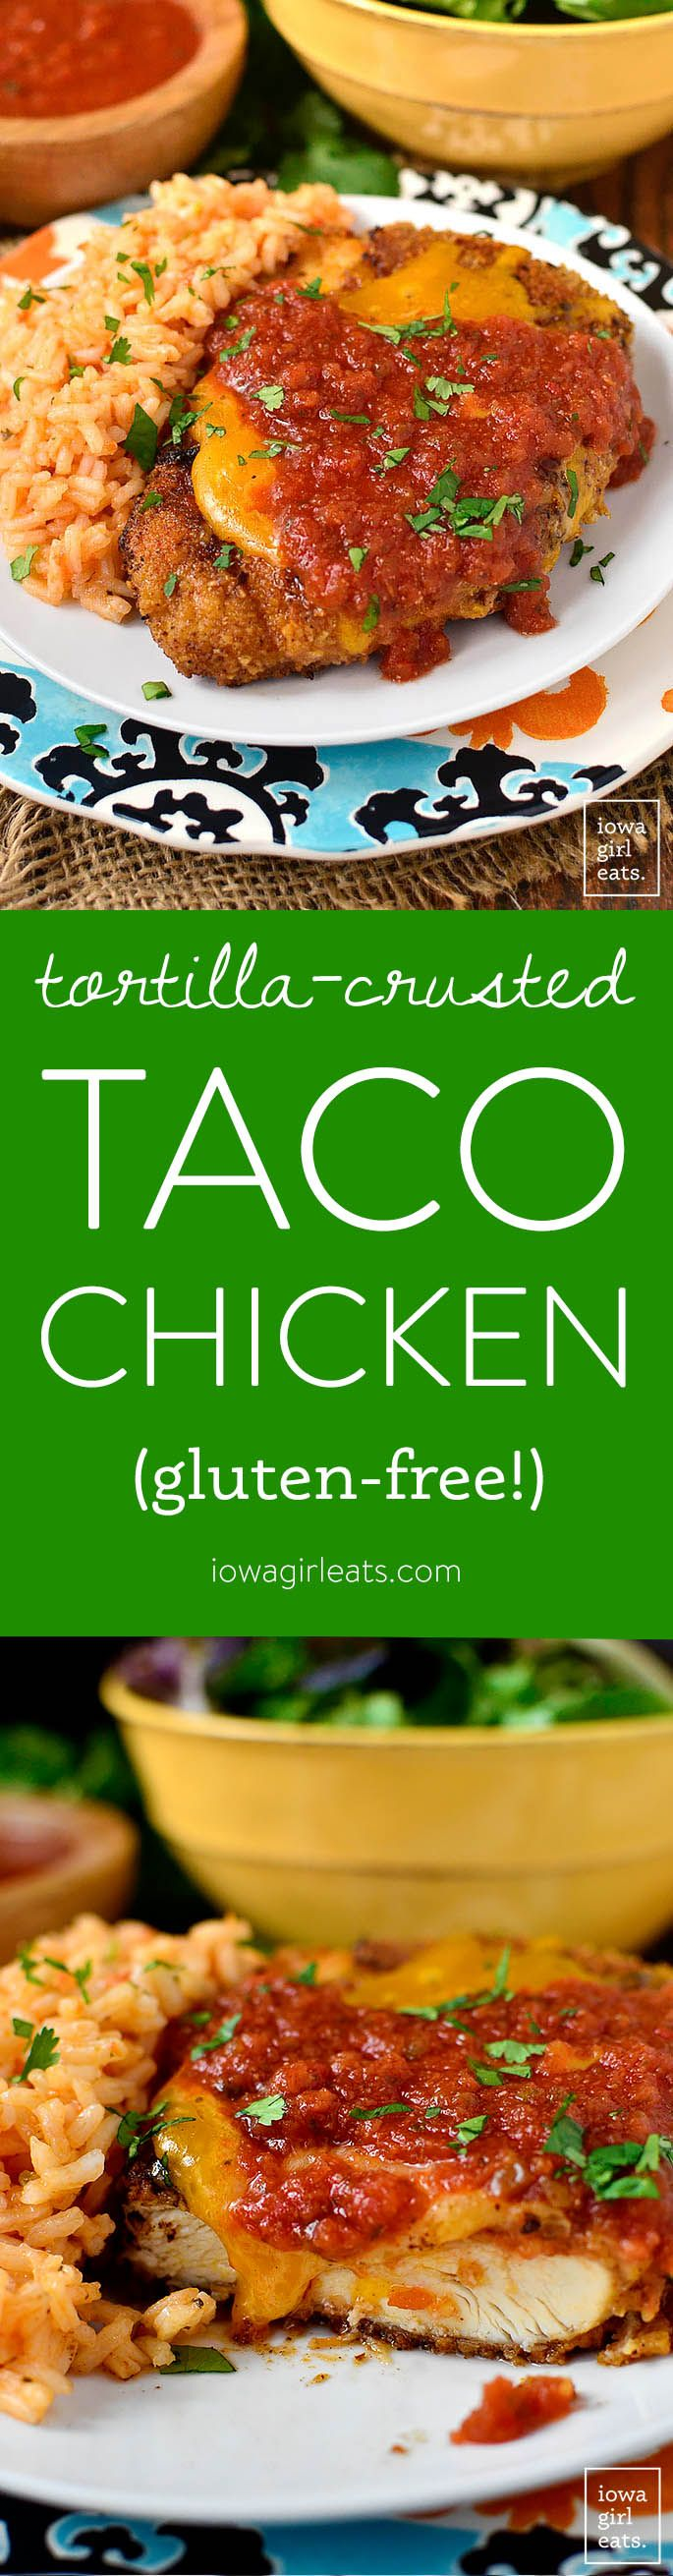 Tortilla-Crusted Taco Chicken is a family-favorite. Gluten-free, and full of flavor and crunch! | iowagirleats.com